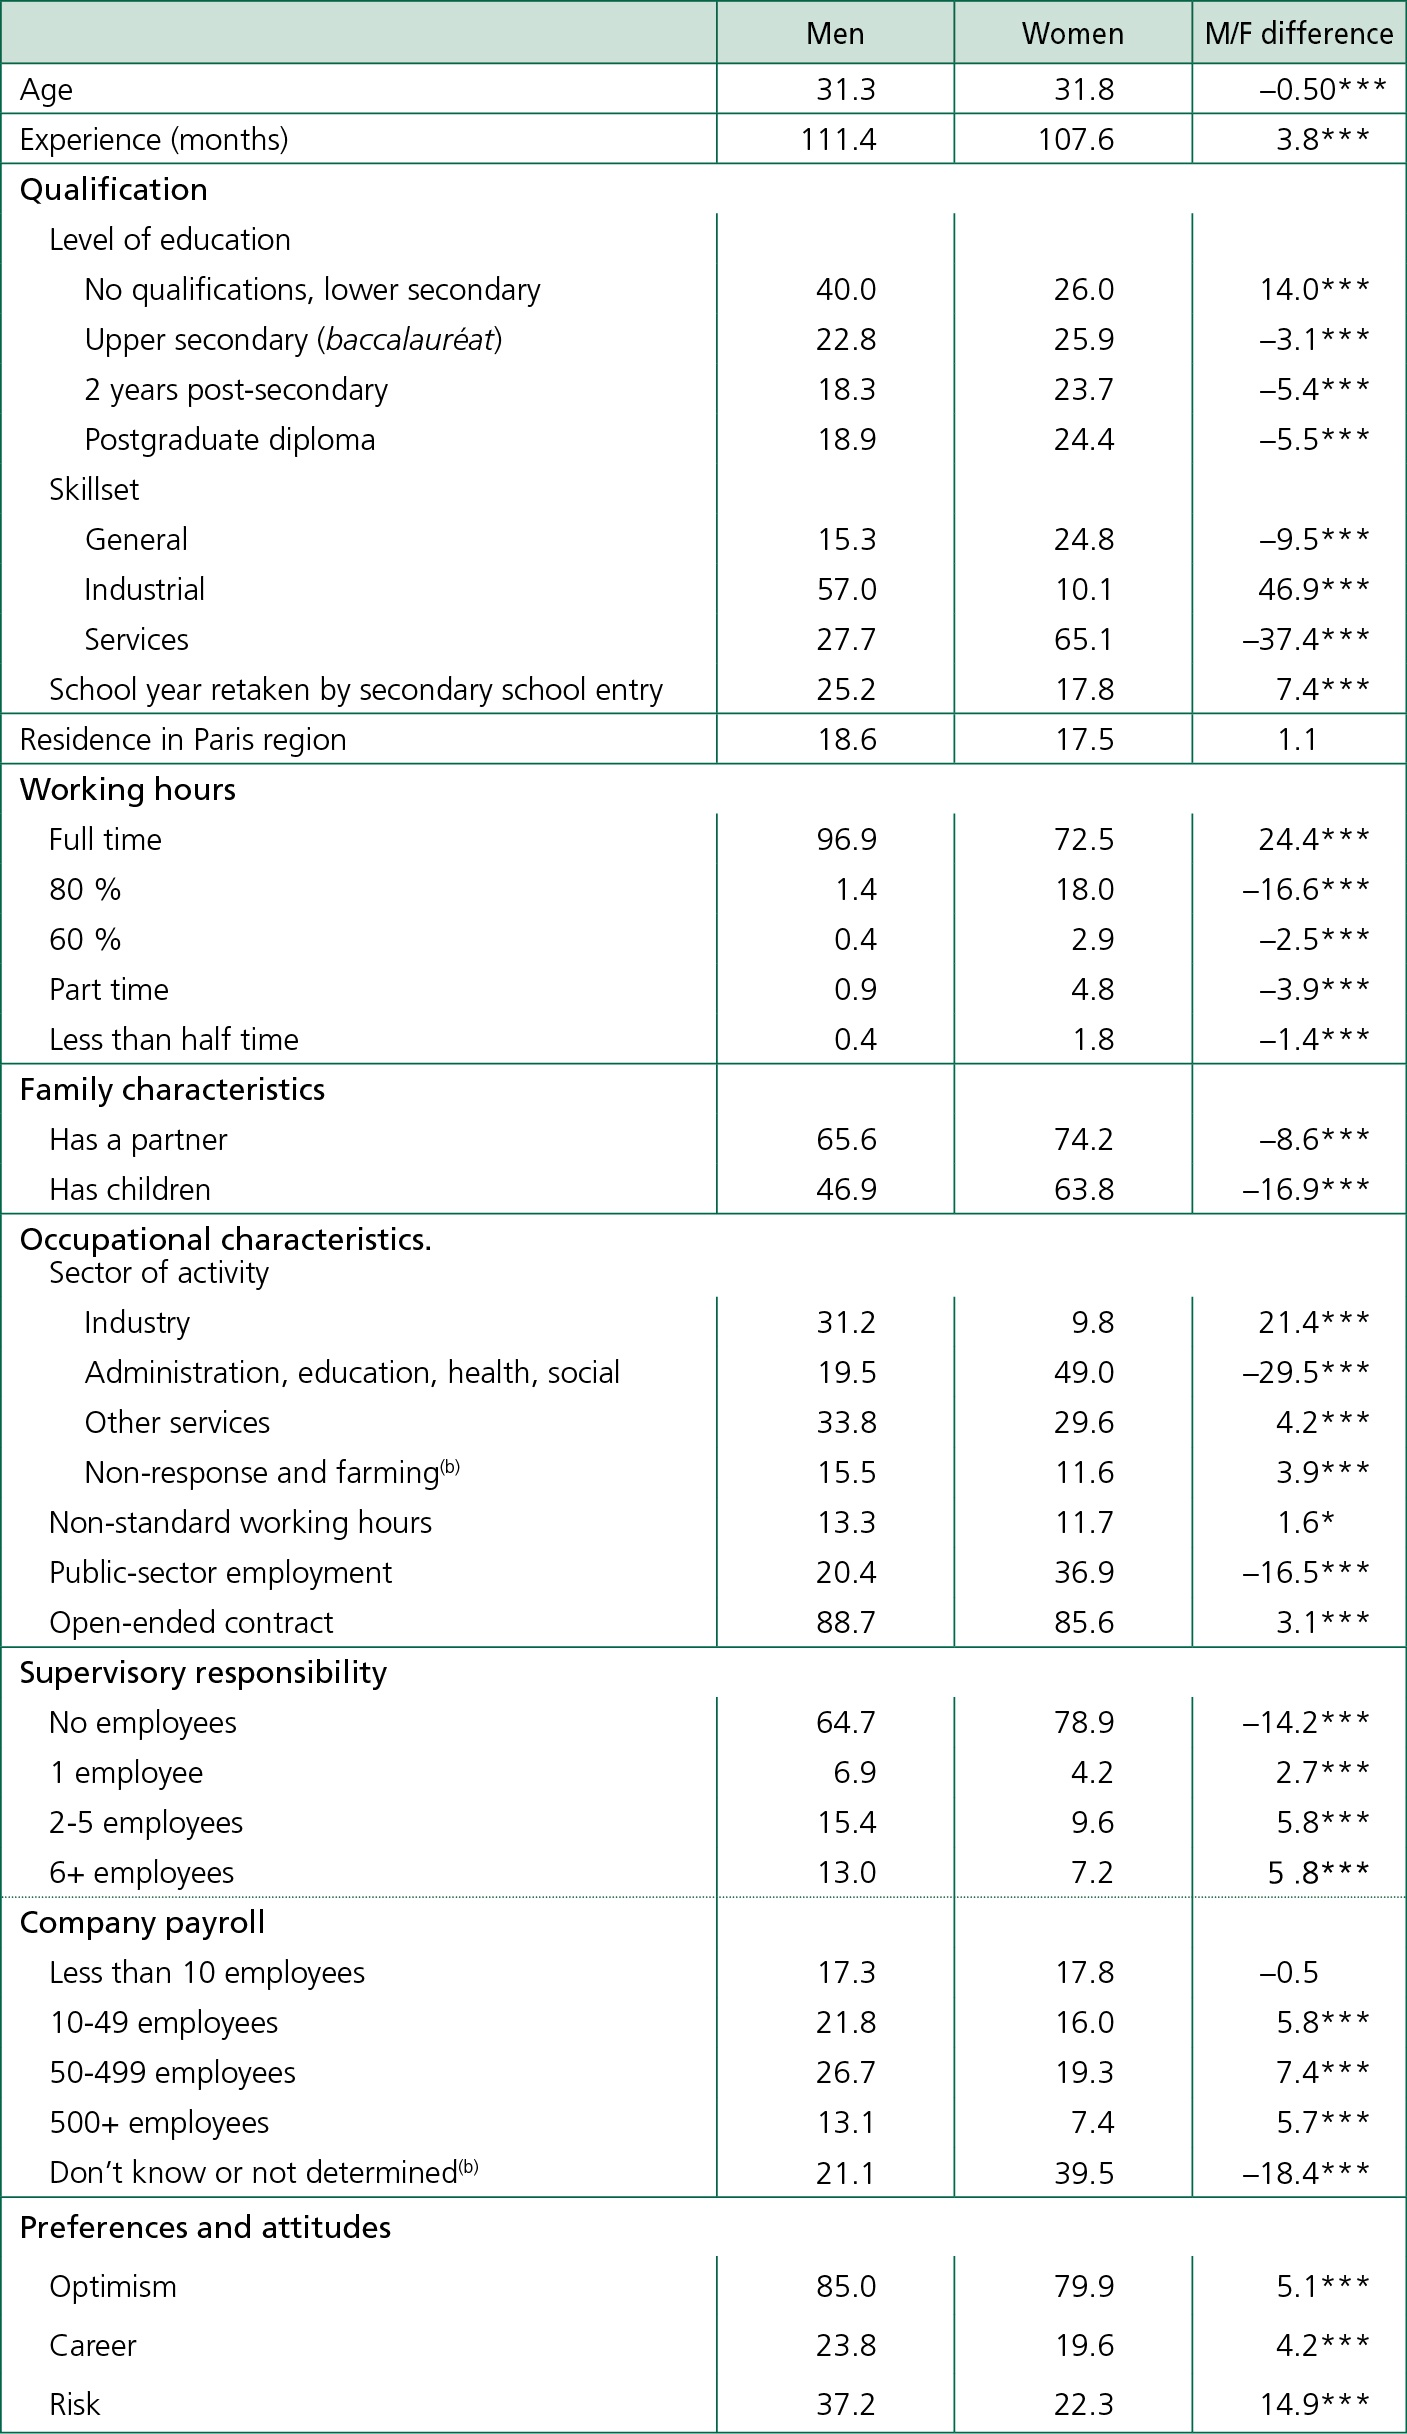 Career Choices And The Gender Pay Gap The Role Of Work Preferences